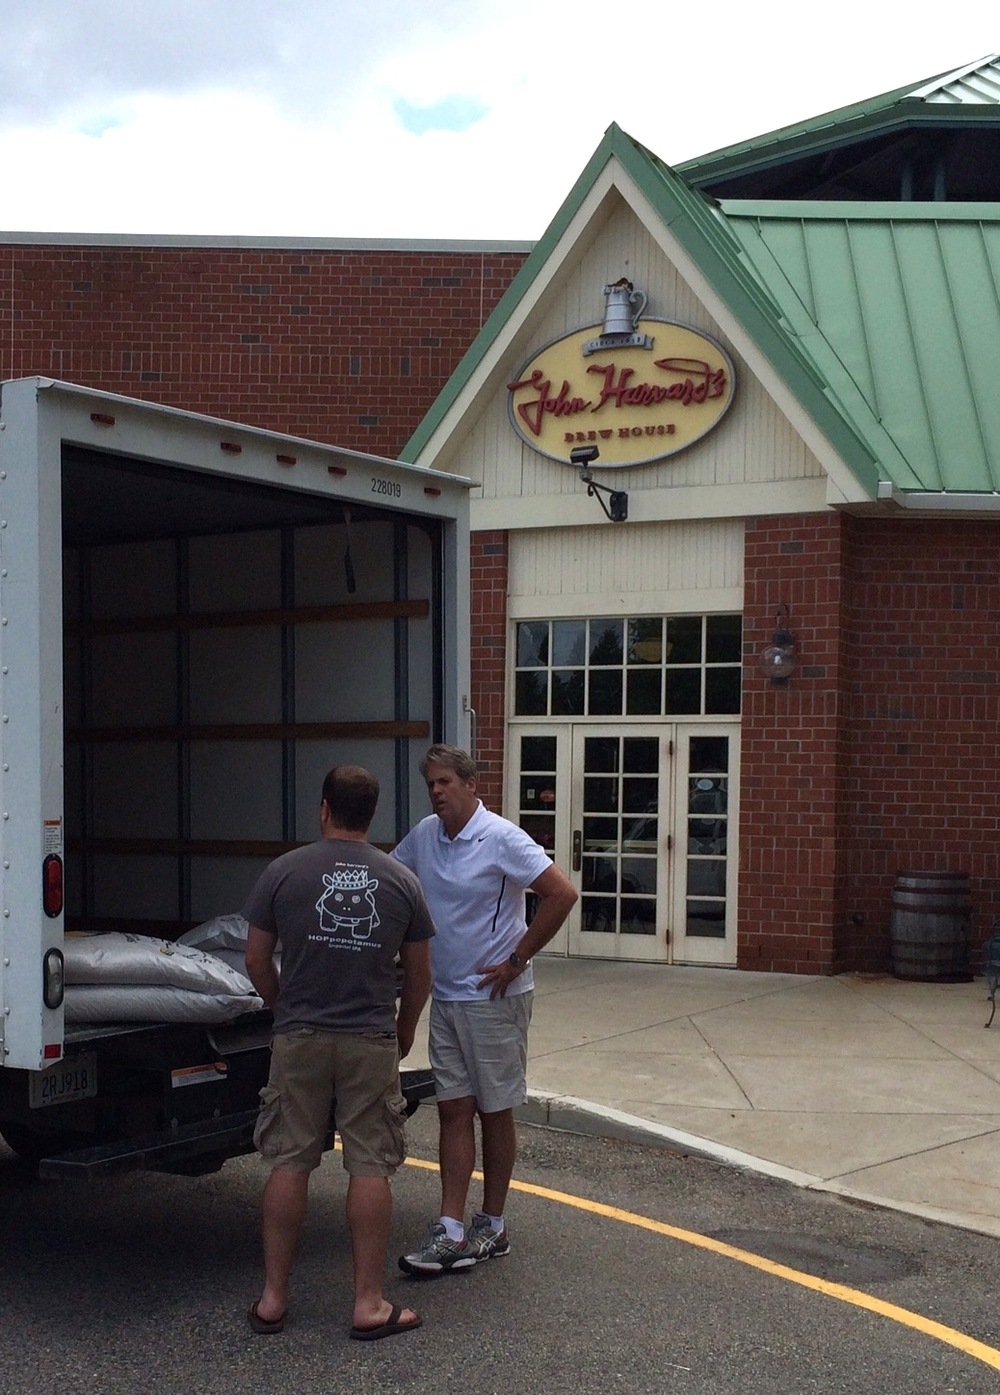 Aaron Crossett, Head Brewer, John Harvard's Brewery takes delivery from Mark